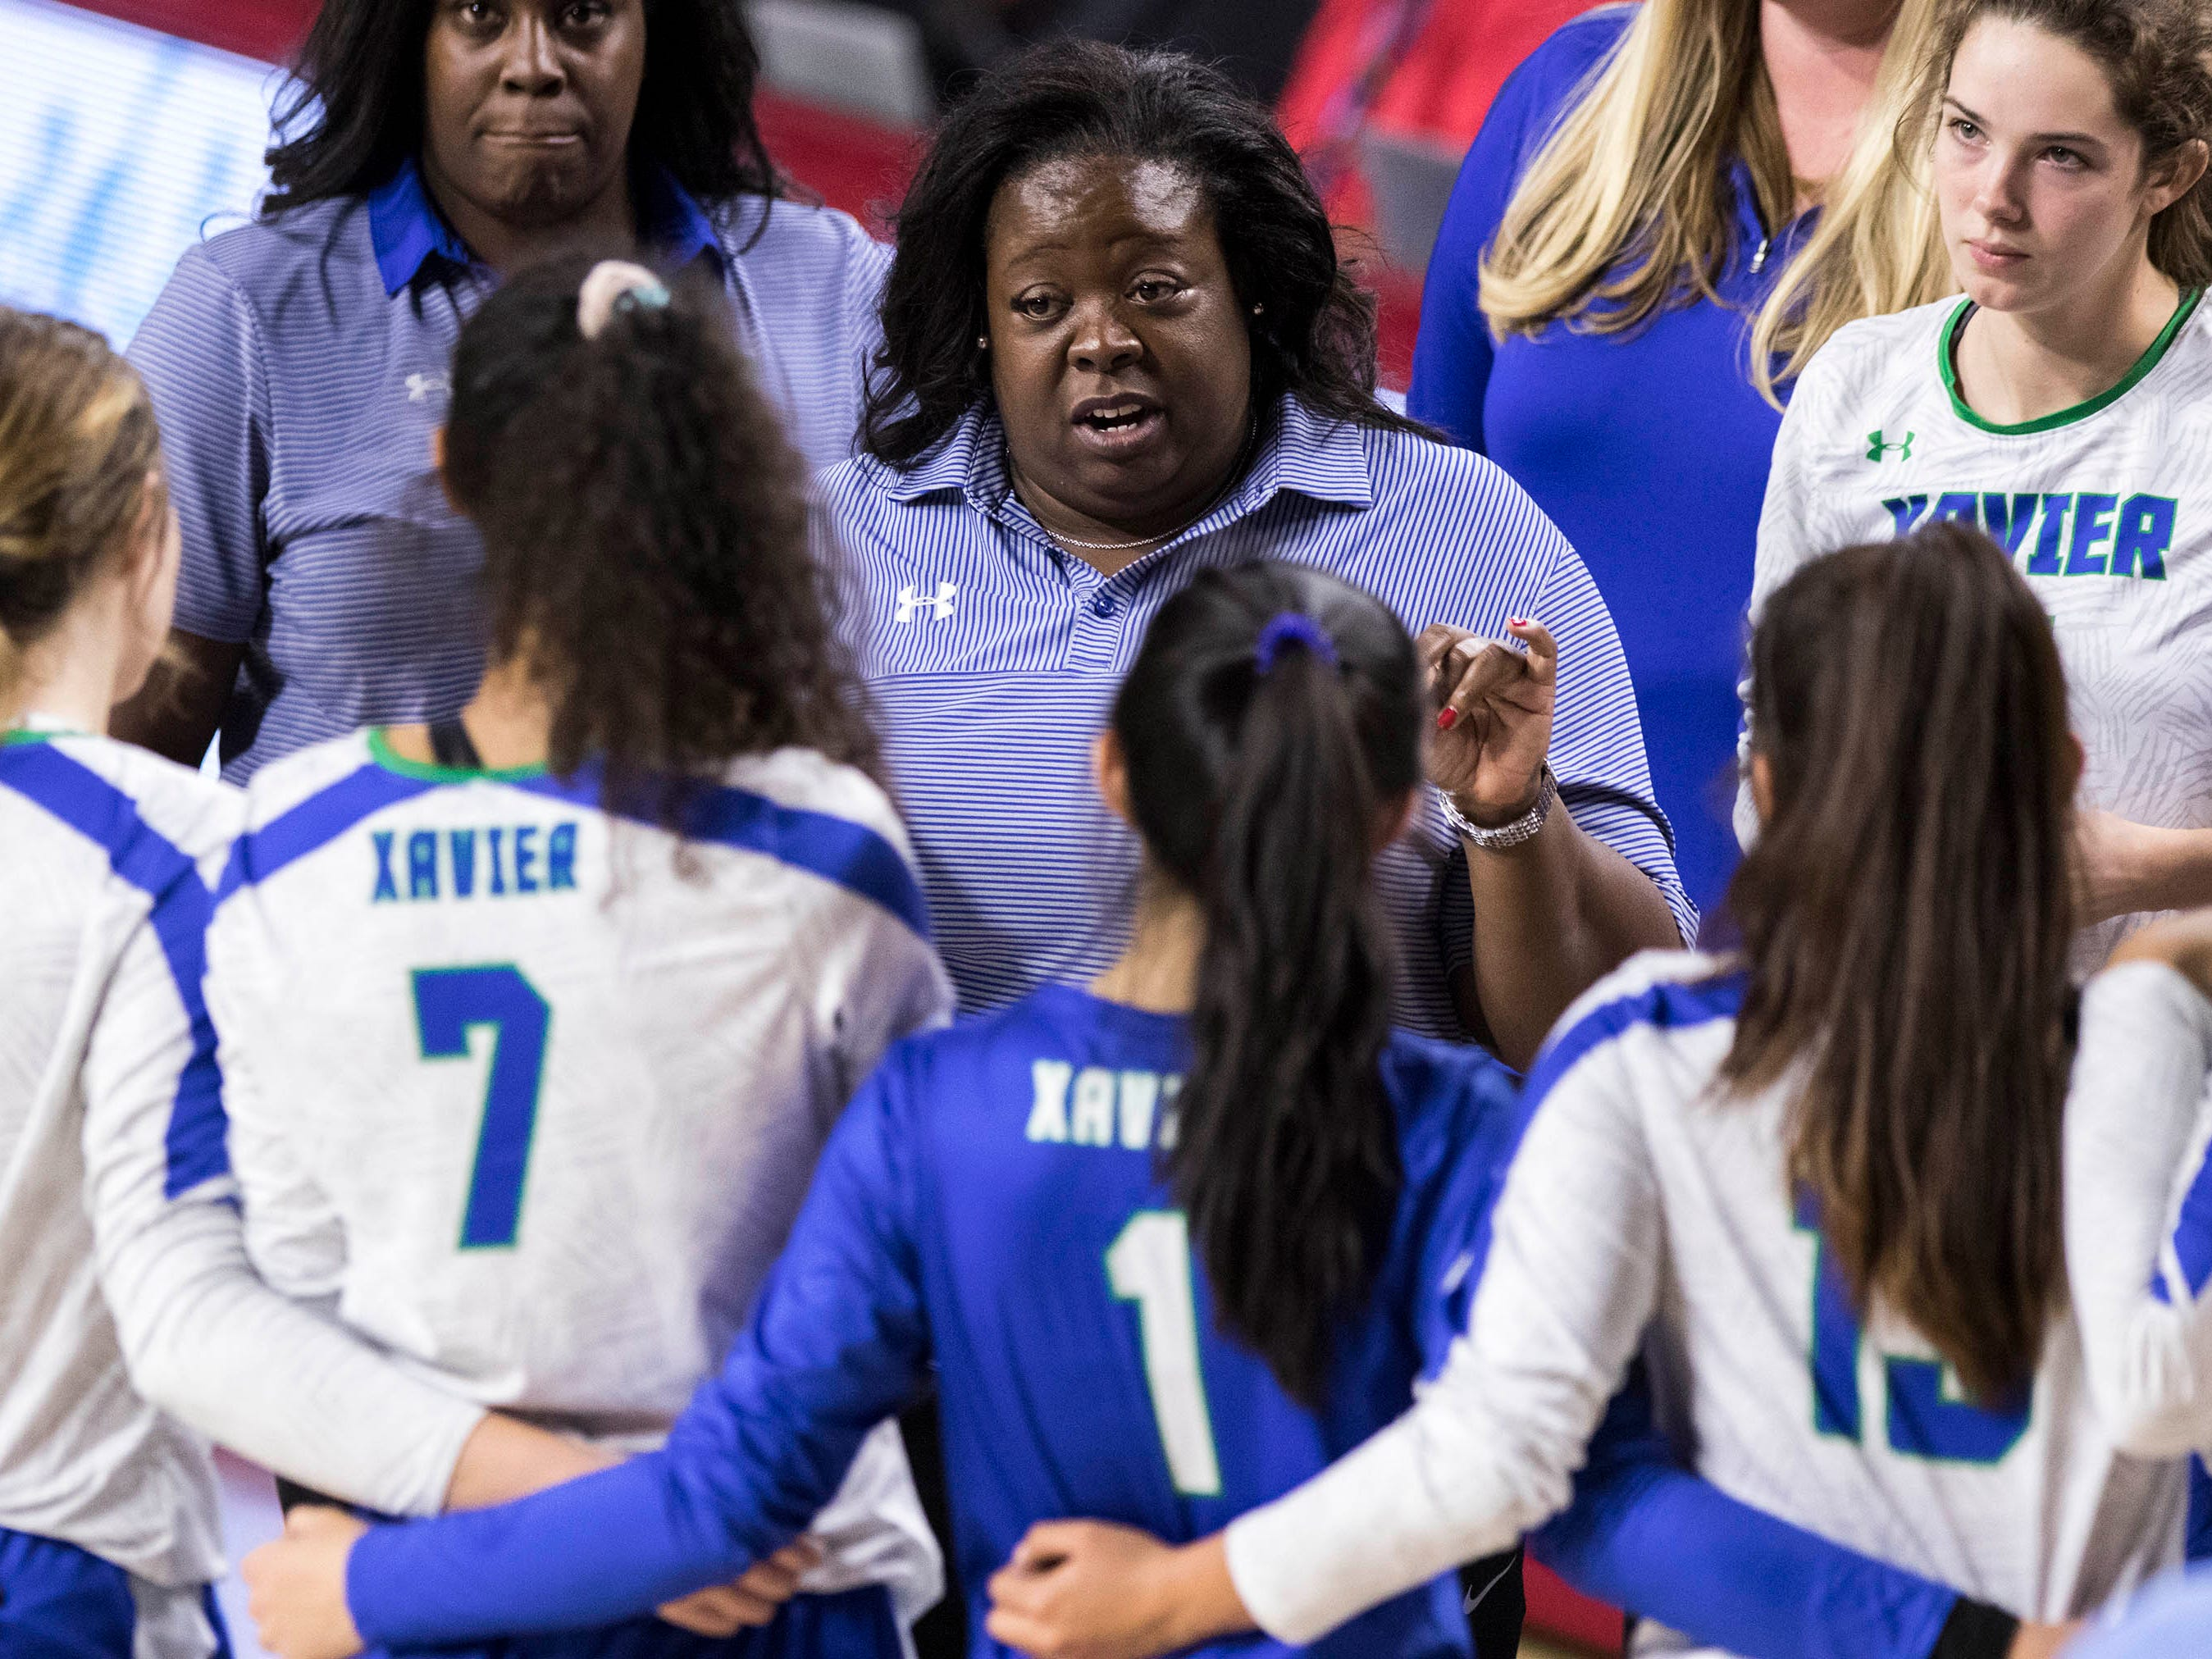 Xavier coach Lamar-Renee BryantÊtalks to her team as they play Corona del Sol's in the girls 6A volleyball state championship at Wells Fargo Arena in Tempe, Wednesday, Nov. 7, 2018.